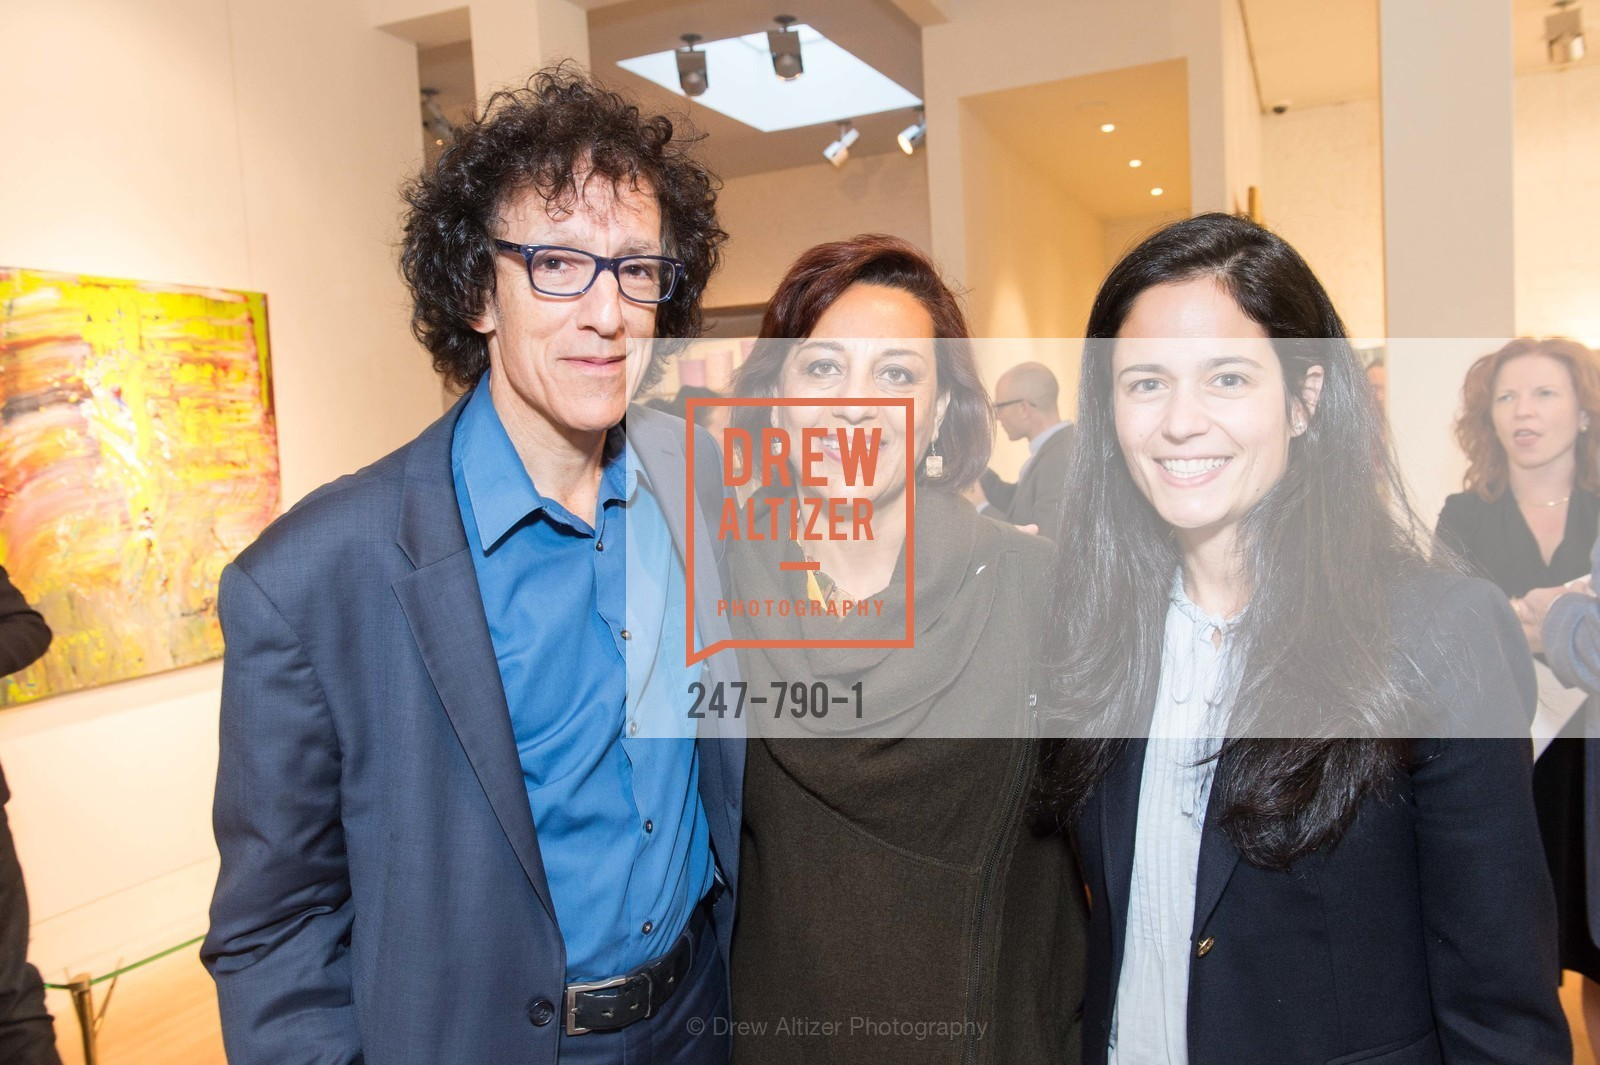 Jonathan Curiel, Nazila Tobaei, Florie Hutchinson, Post War and Contemporary Preview at HEDGE GALLERY, US, April 16th, 2015,Drew Altizer, Drew Altizer Photography, full-service agency, private events, San Francisco photographer, photographer california